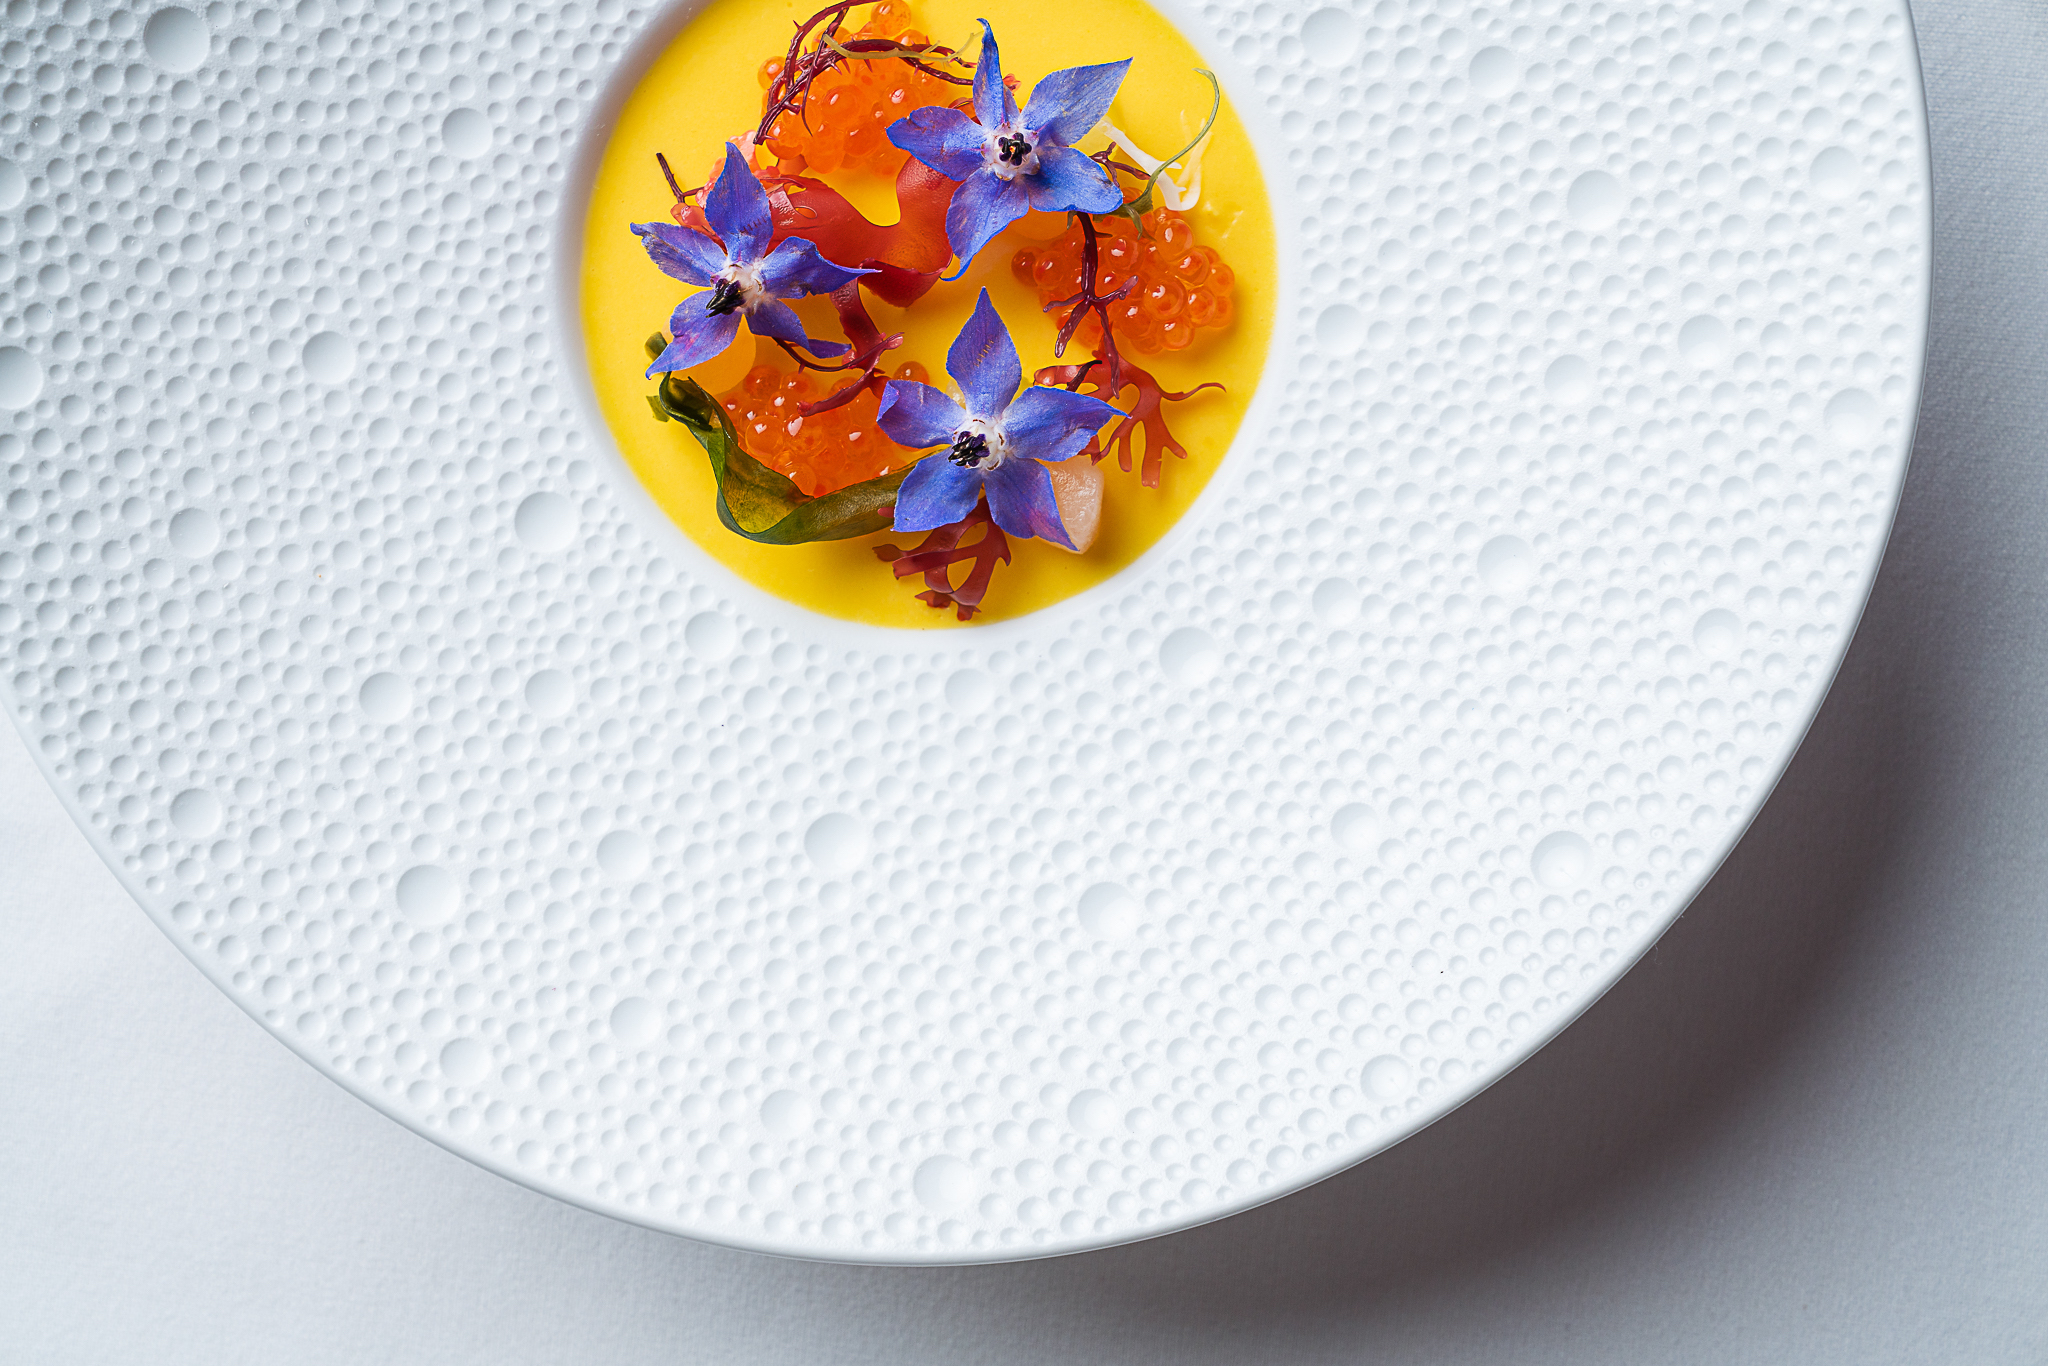 A dish topped with colorful edible flowers in a yellow gel.